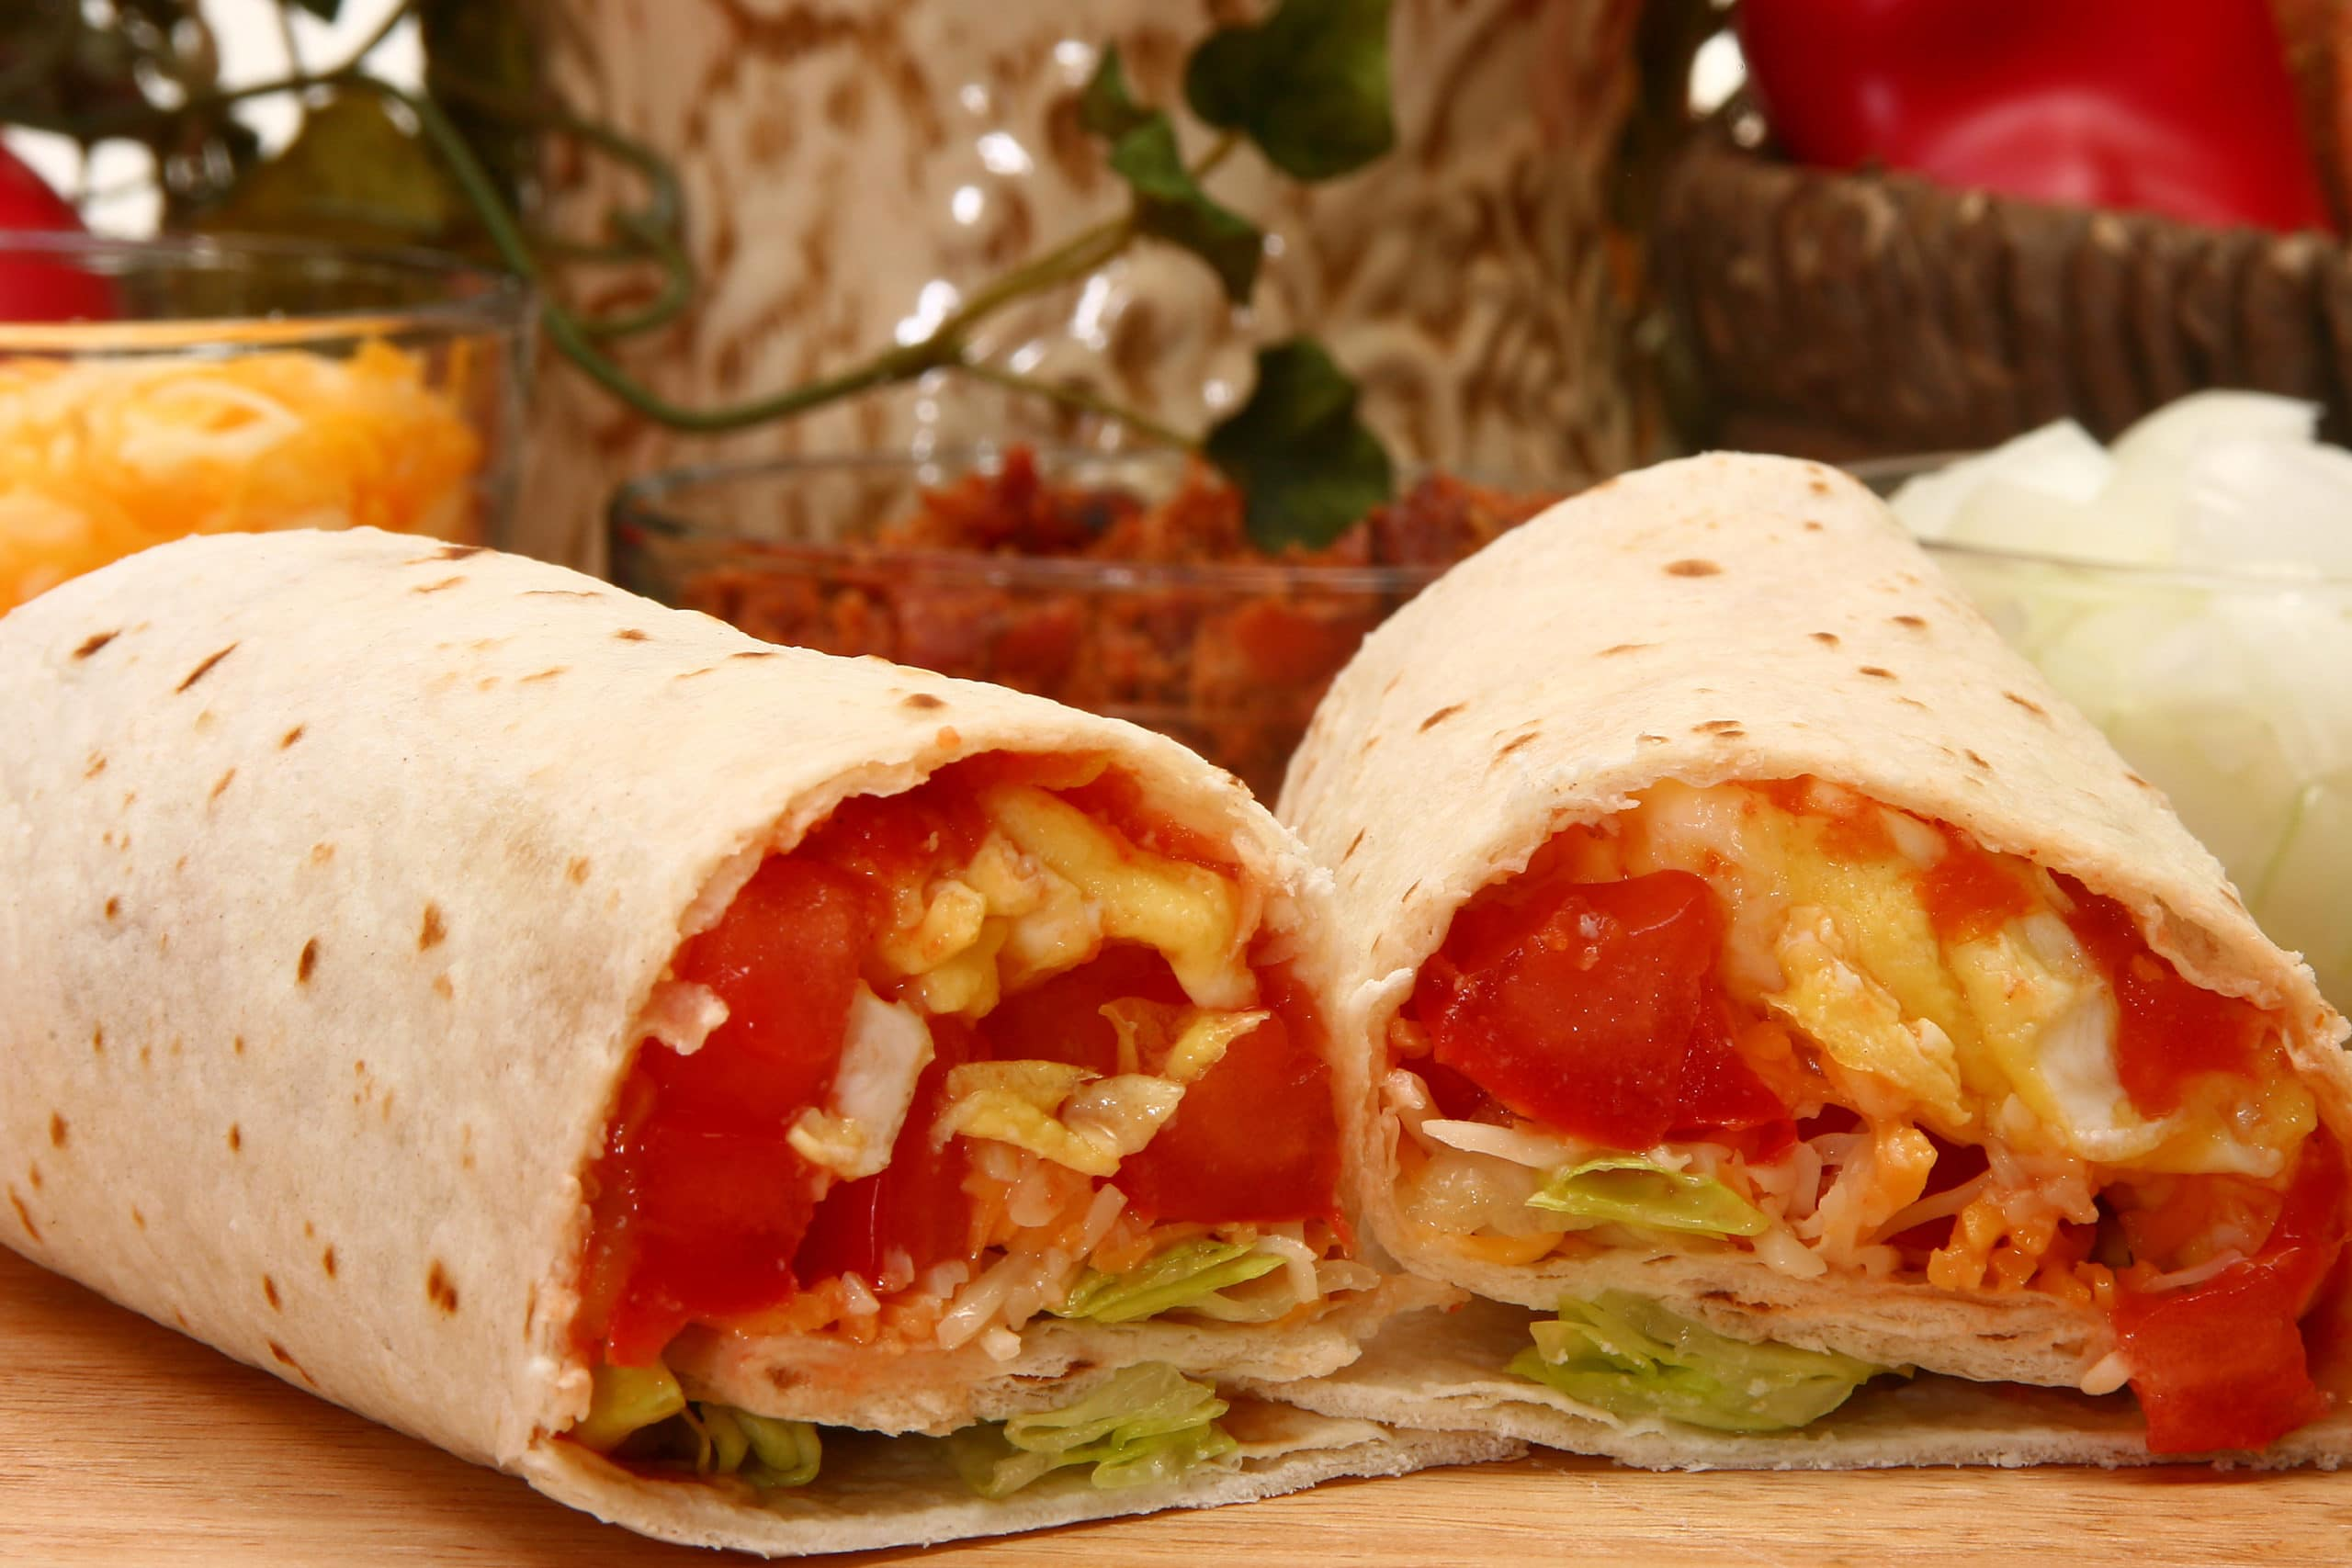 Picture of breakfast burrito